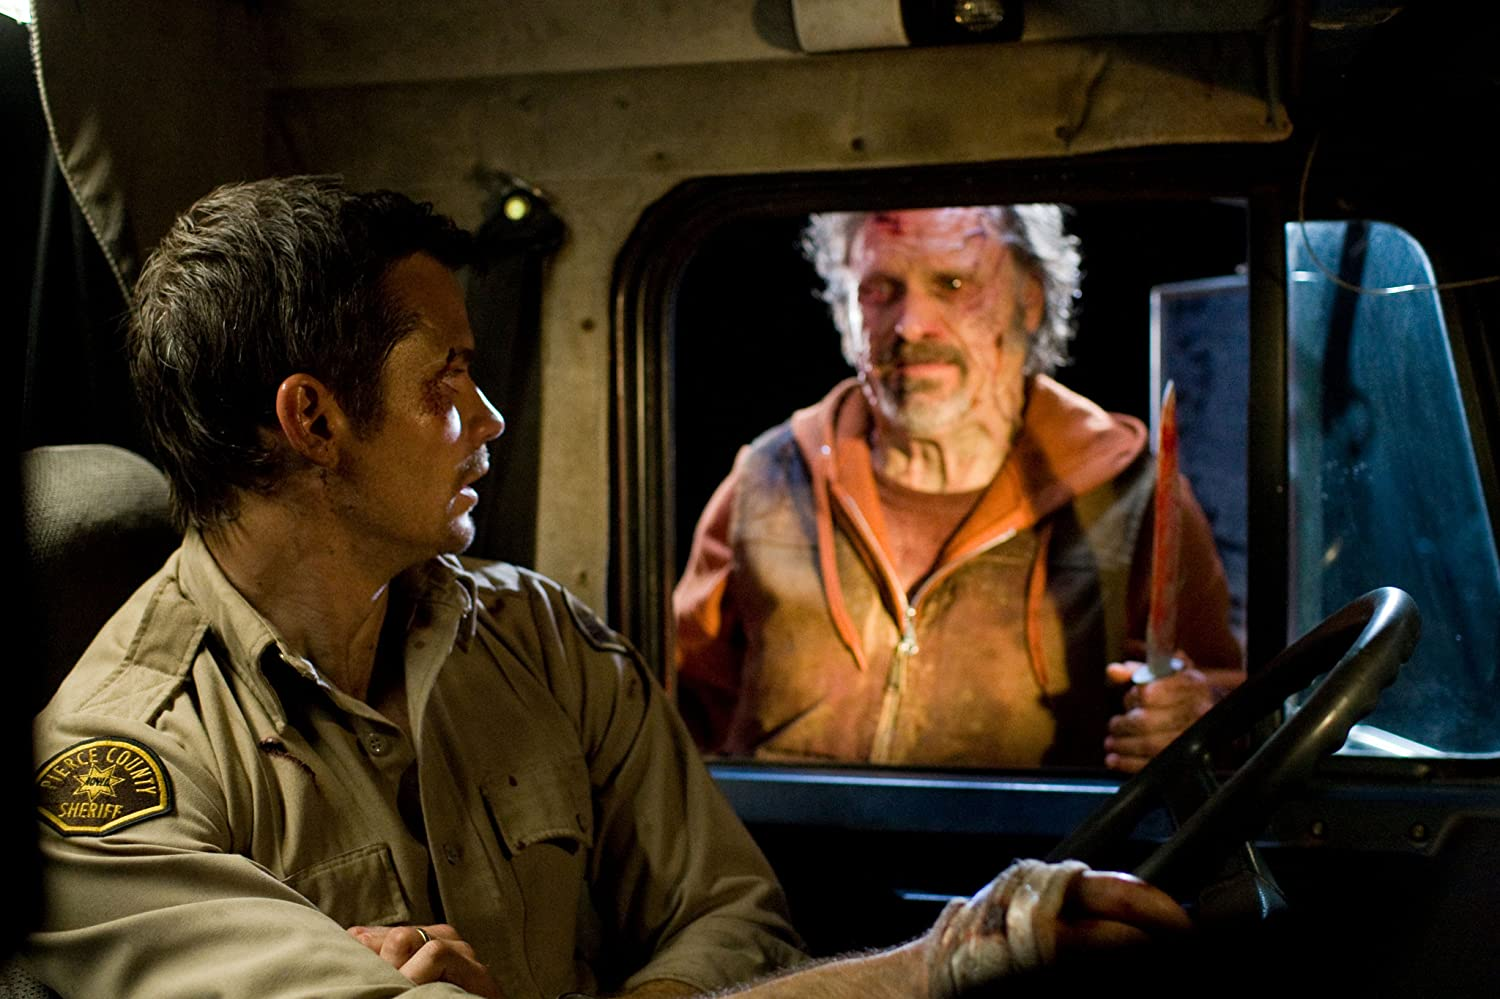 Timothy Olyphant in The Crazies (2010)